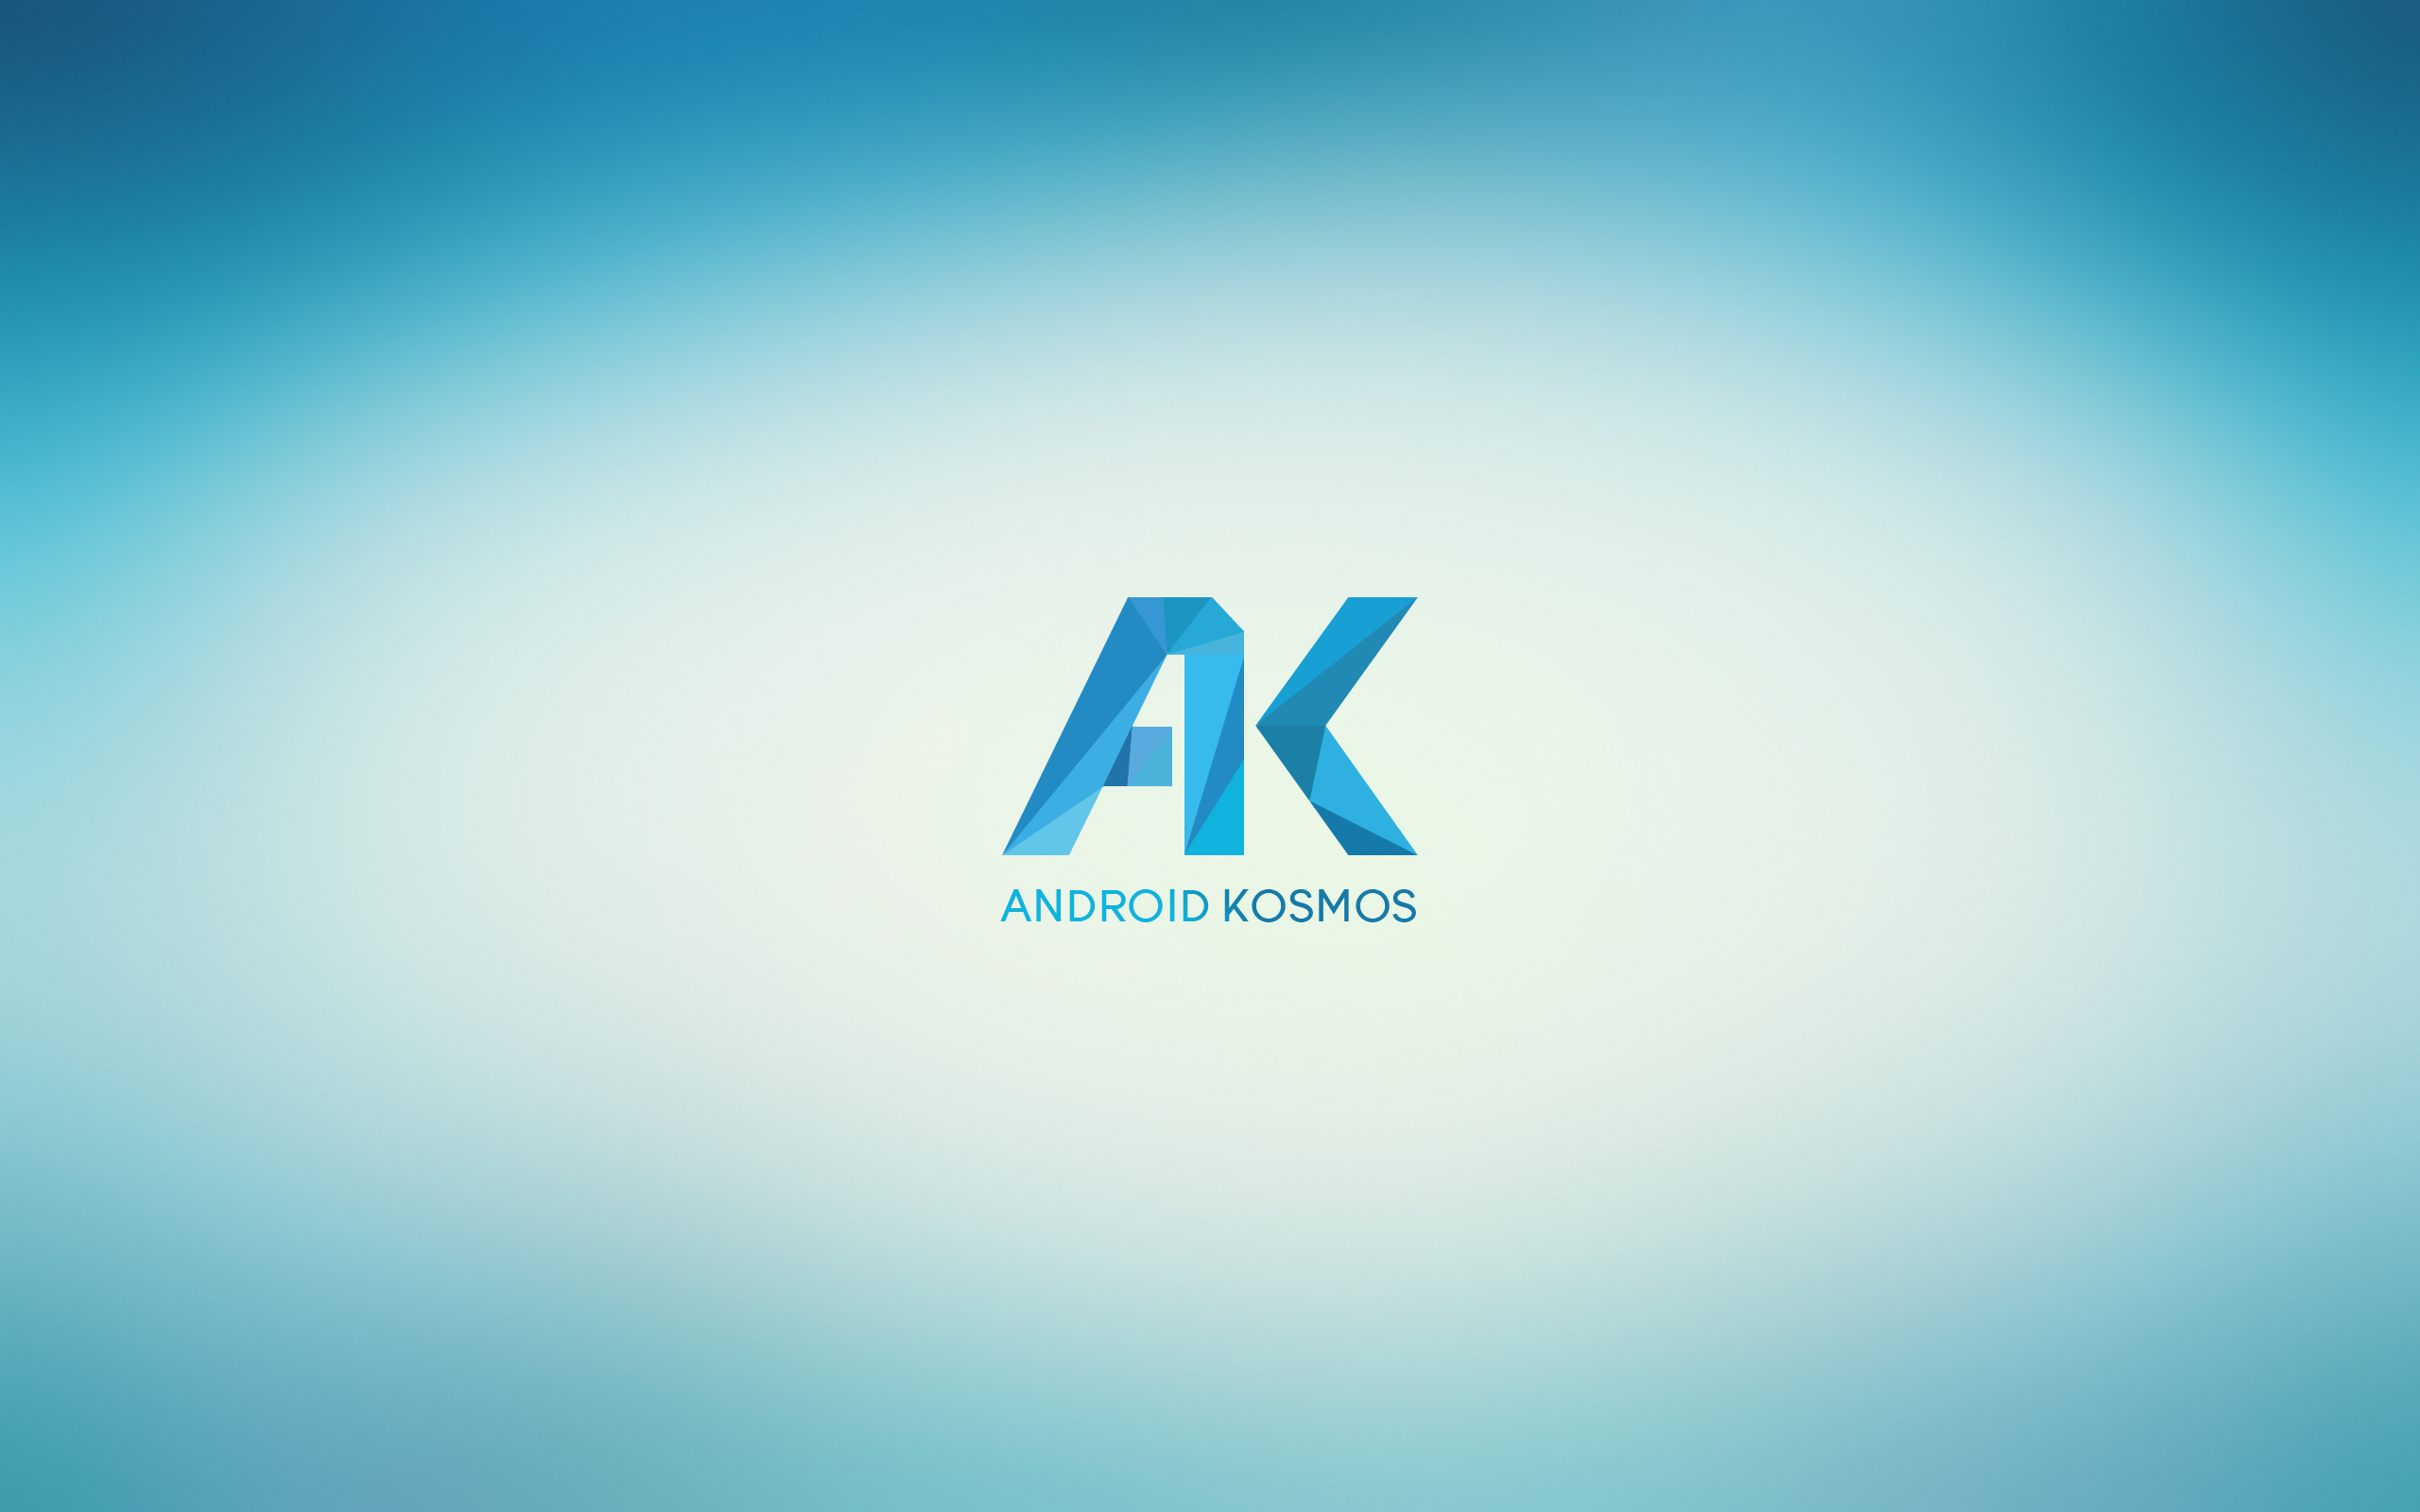 AndroidKosmos Wallpaper 1 - 2560x1600